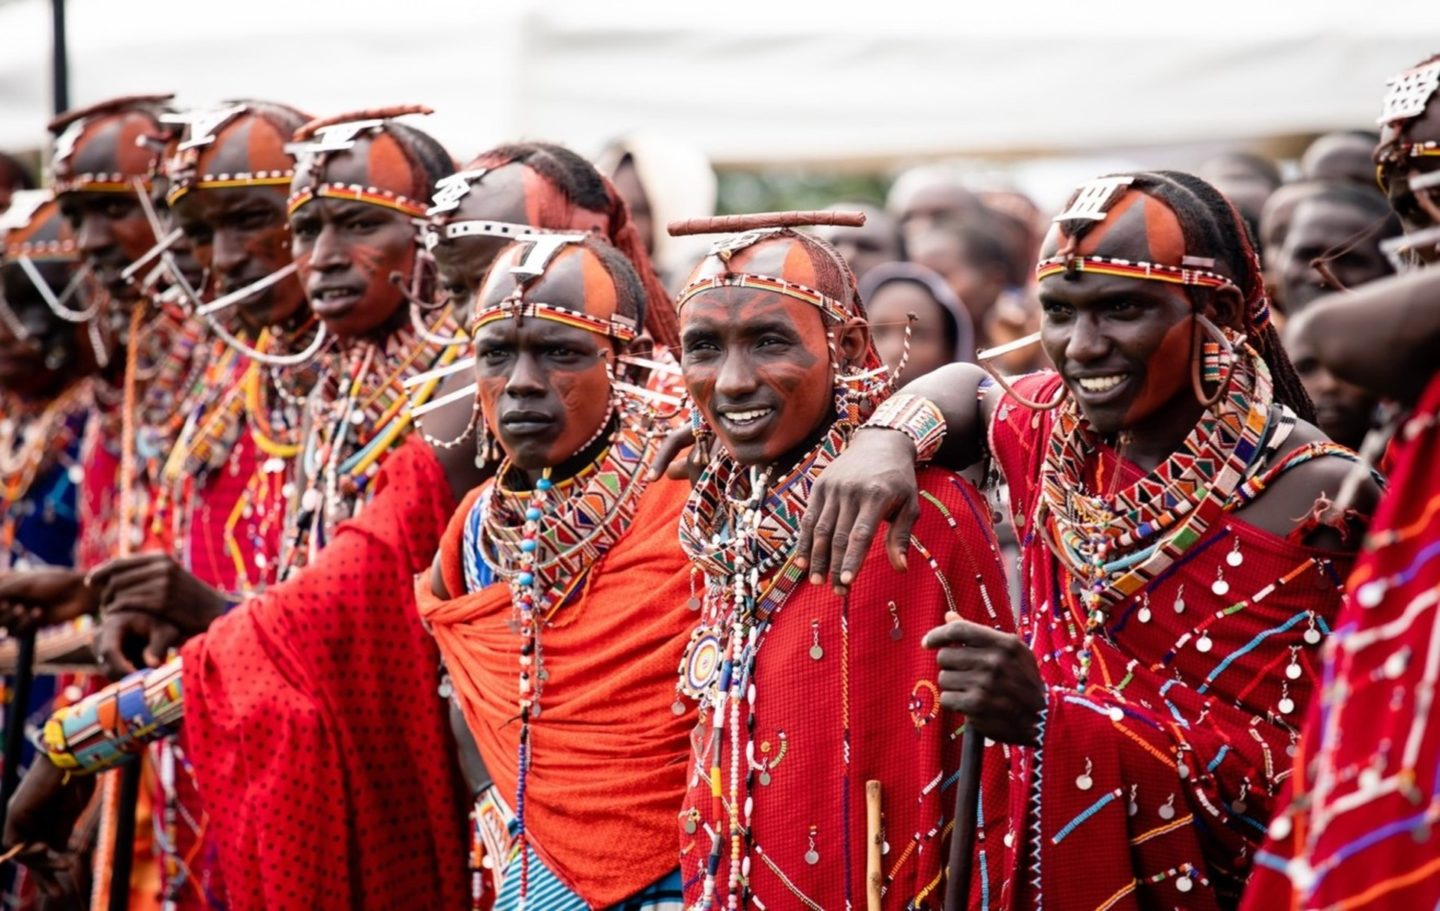 Image One of the warrior teams watches the prize-giving ceremony at the Maasai Olympics finals